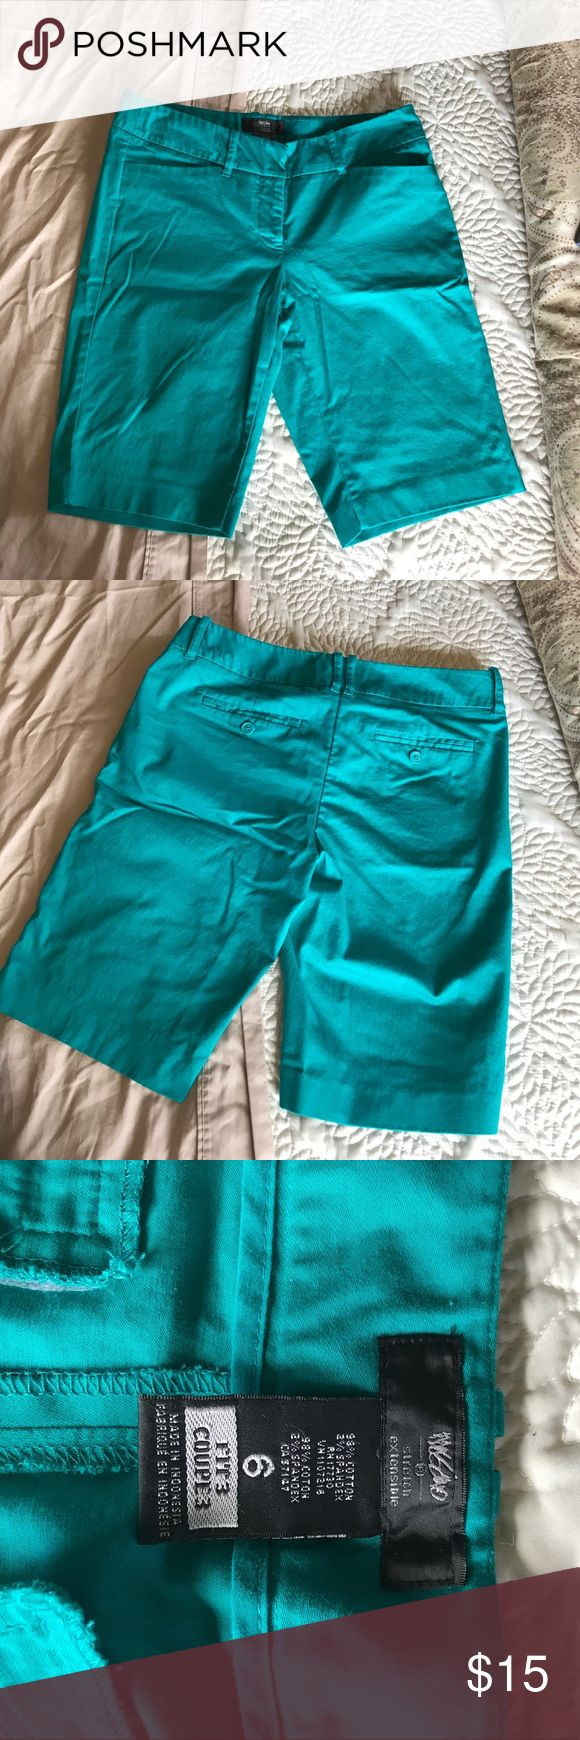 """Mossimo shorts Turquoise shorts from Mossimo. Size 6, 10"""" inseam. Loved and in great condition. Mossimo Supply Co Shorts"""